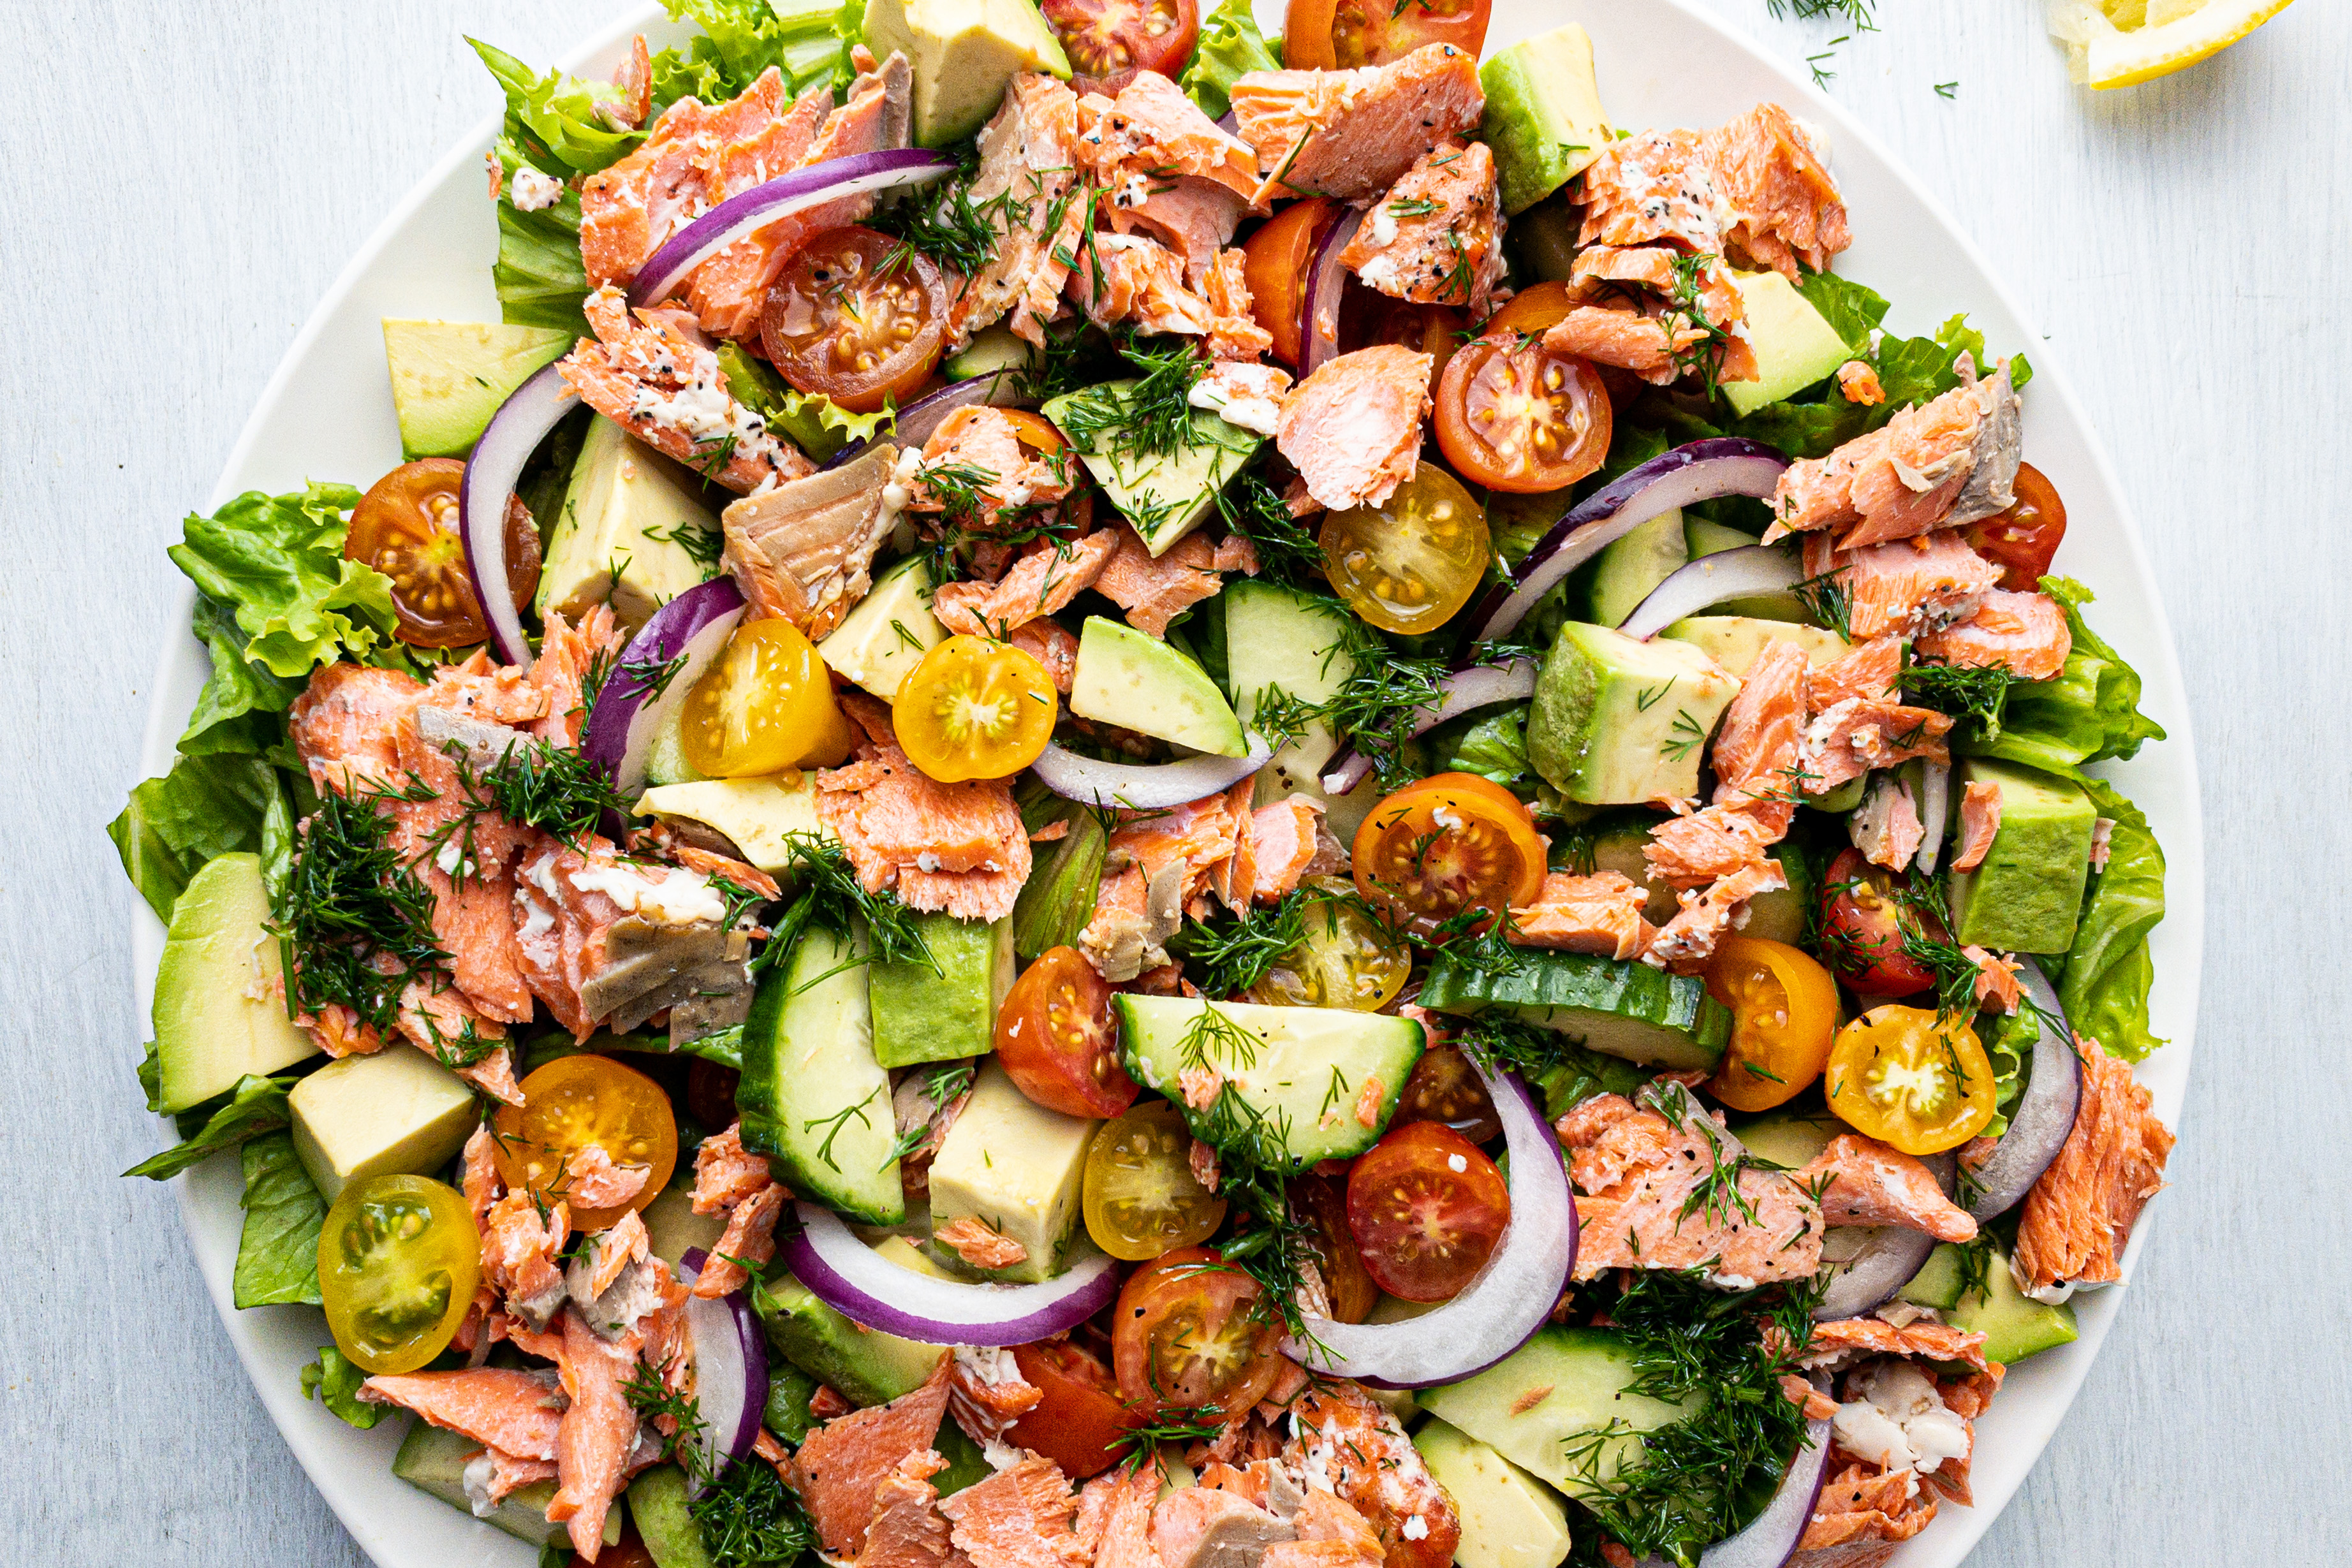 Chopped Salmon Avocado Dill Salad for Healthy Clean Eating